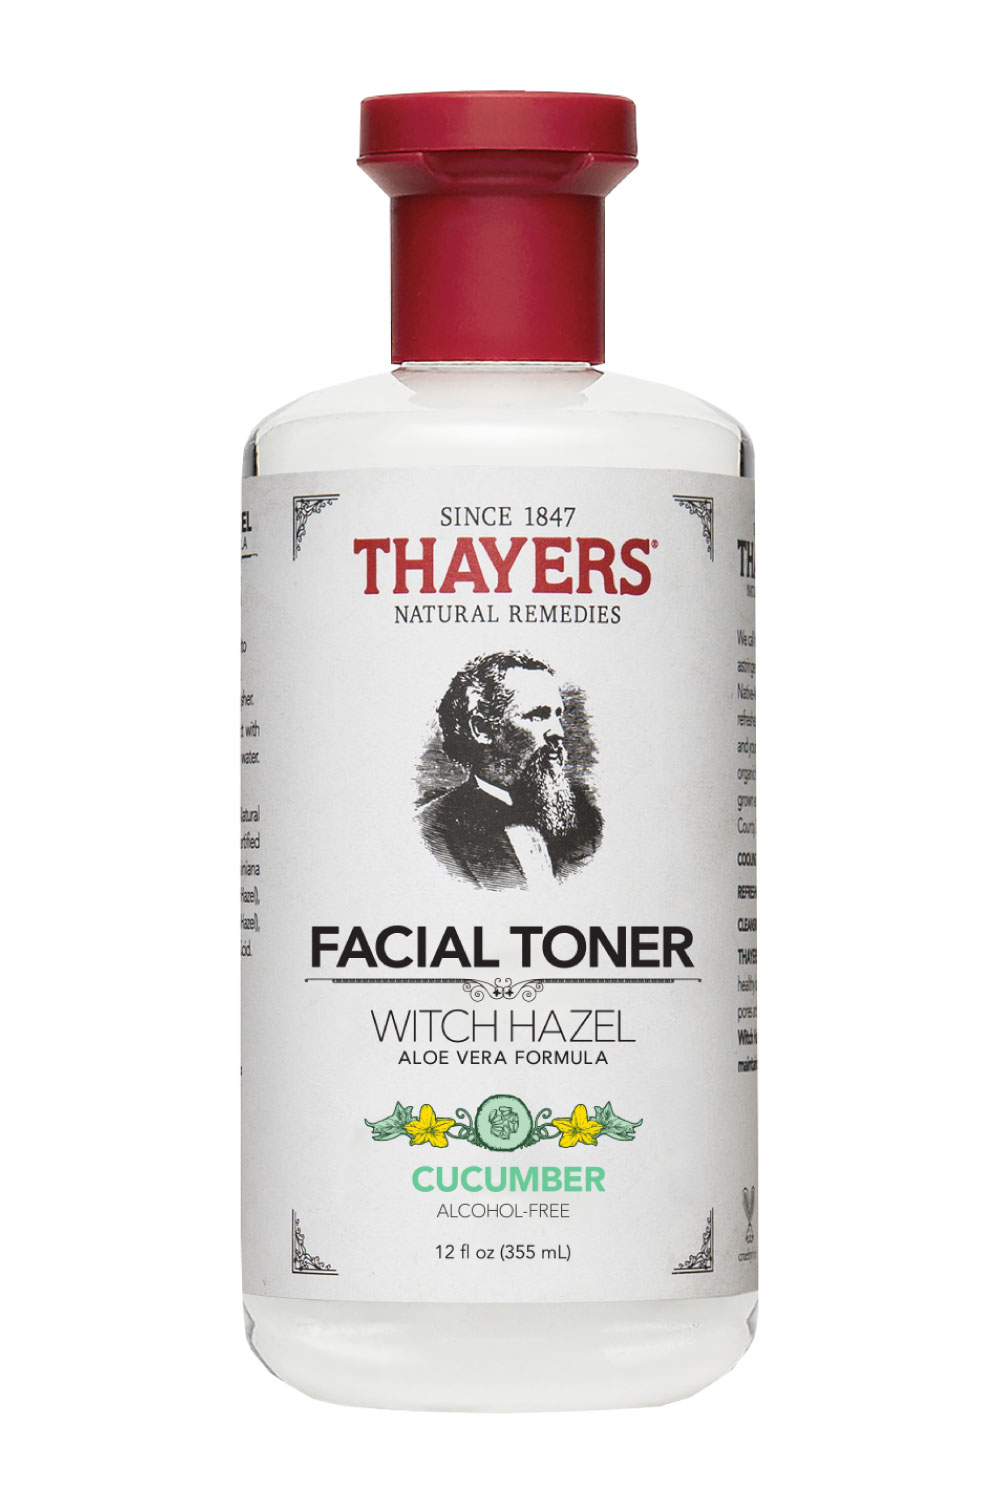 Thayers Cucumber Facial Toner